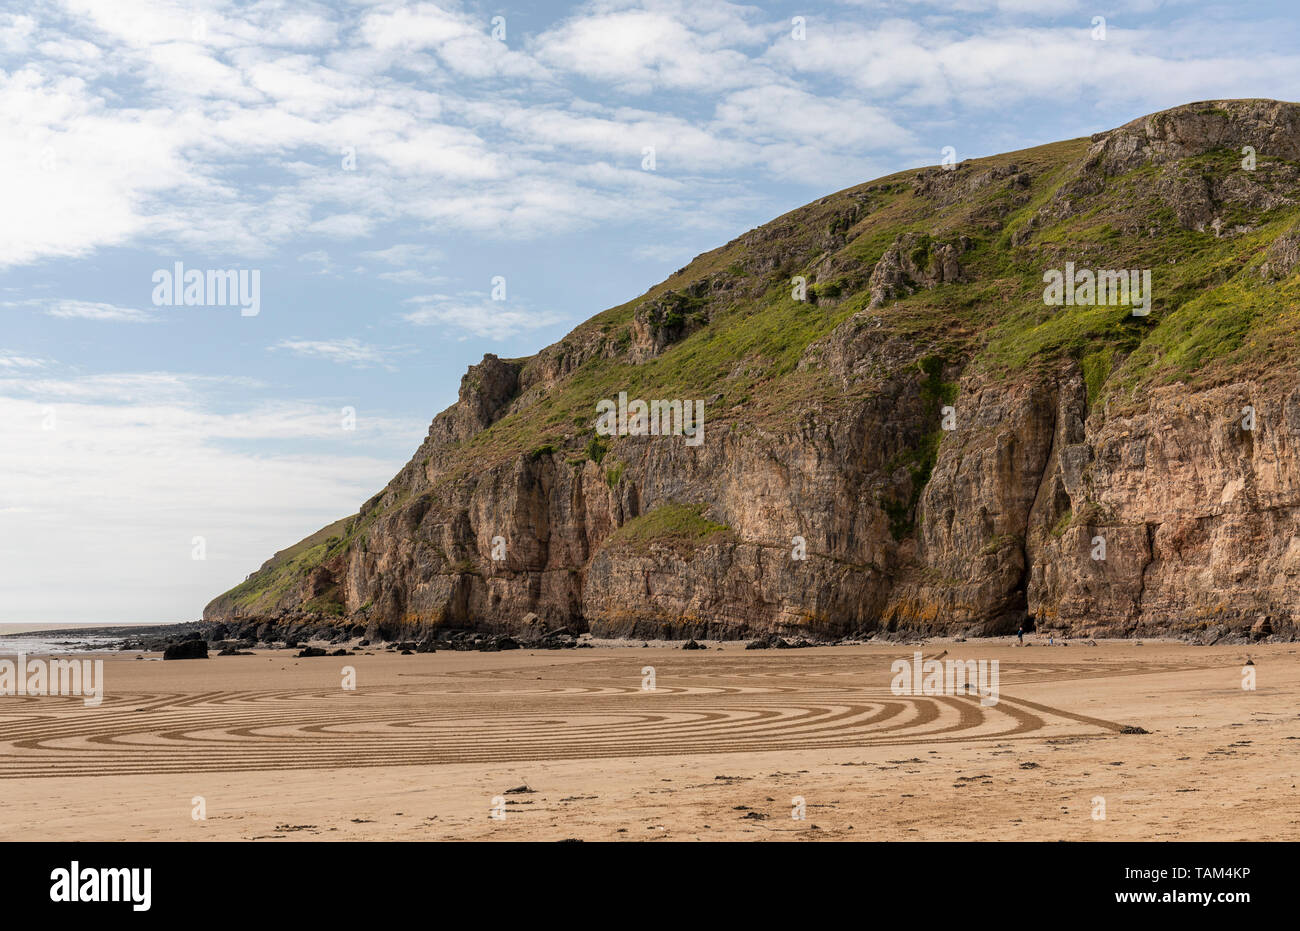 The cliffs on the south side of Brean Down, Somerset, England - Stock Image